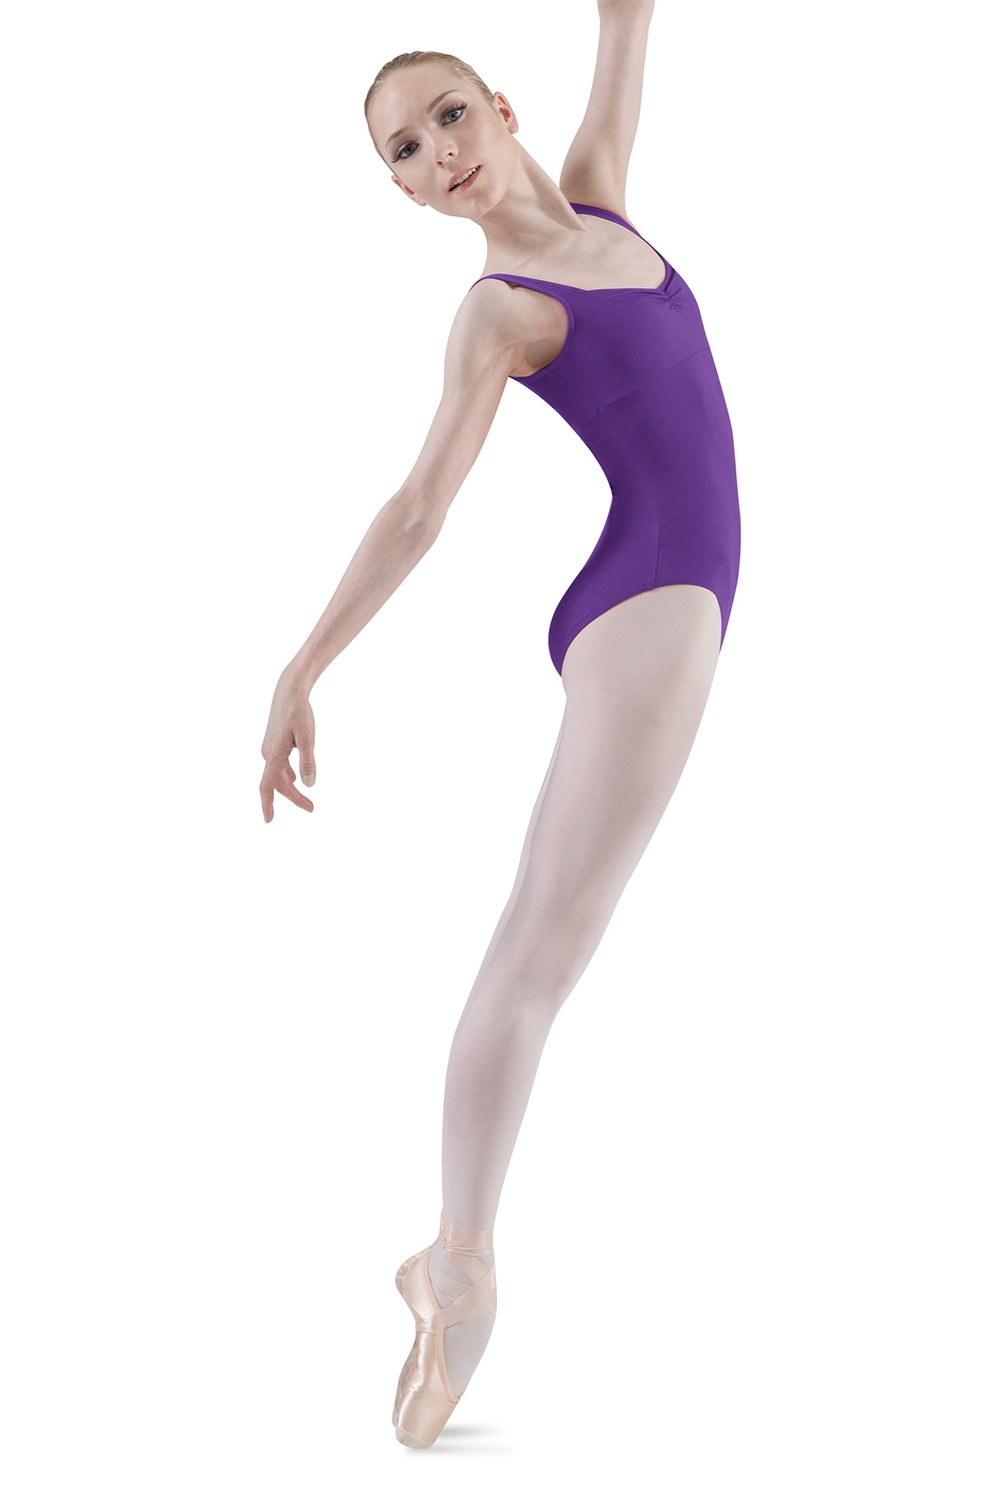 Plage Women's Dance Leotards